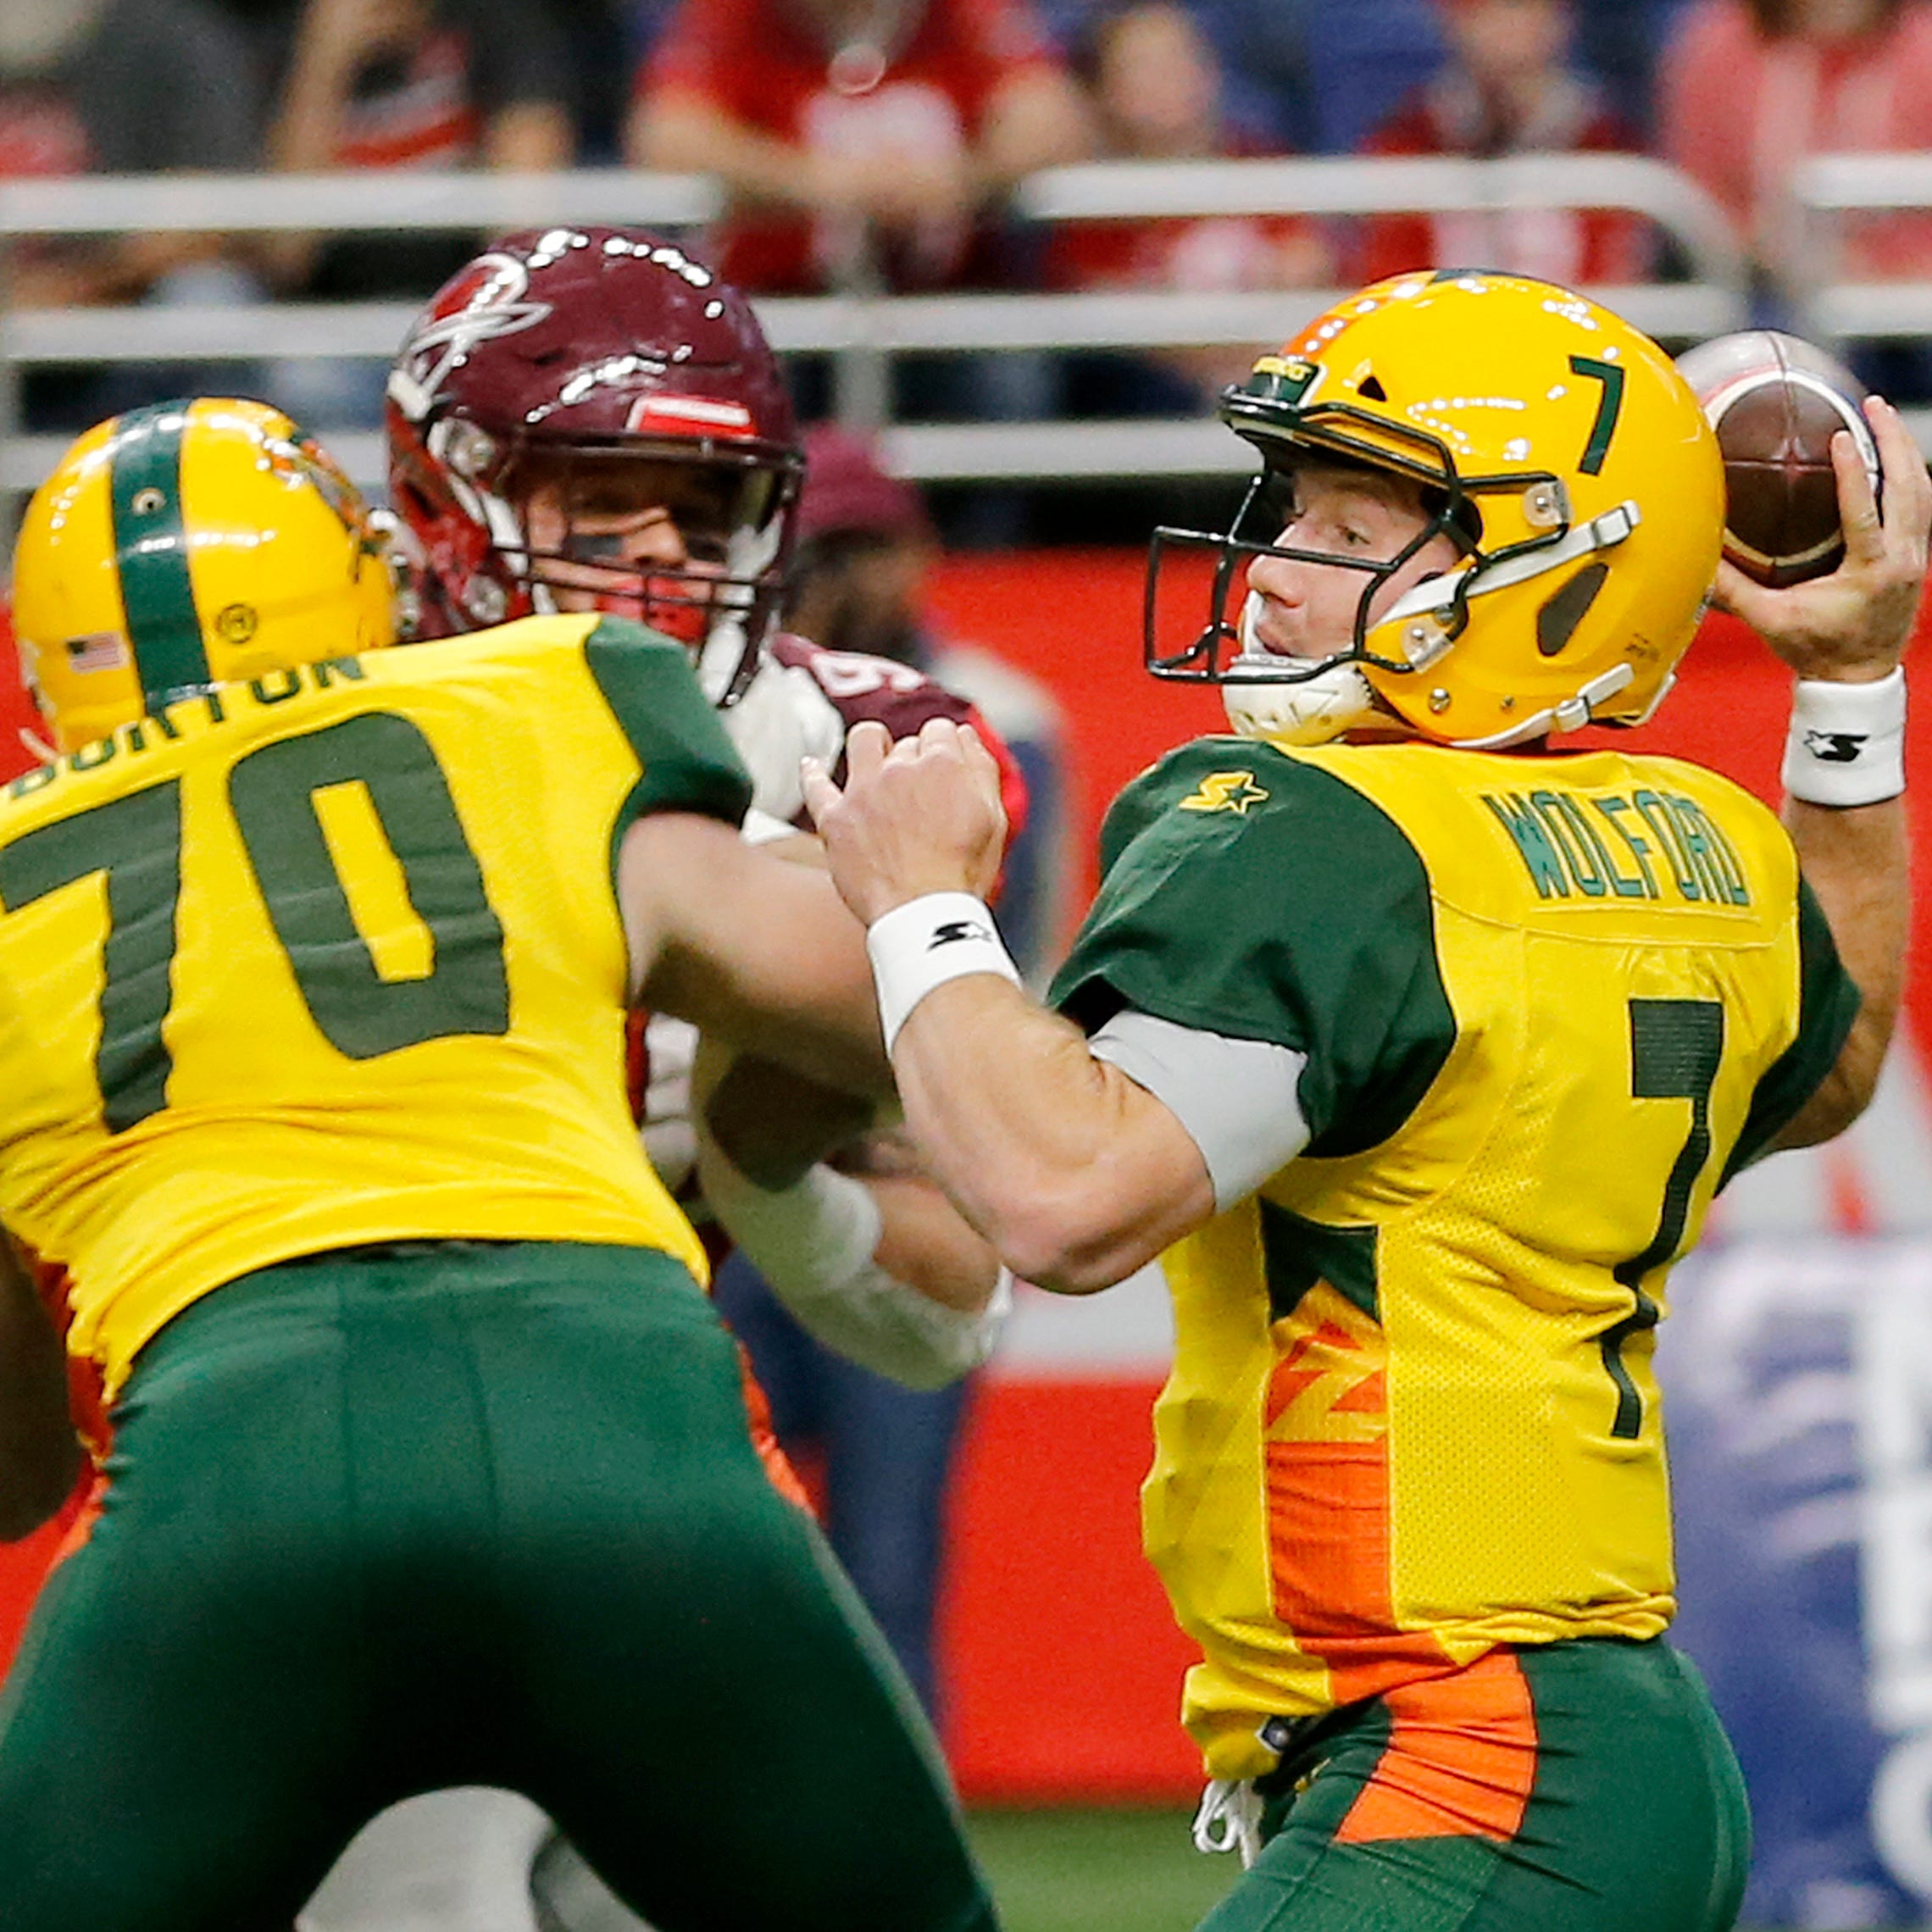 AAF suspending football operations eight weeks into season, report says